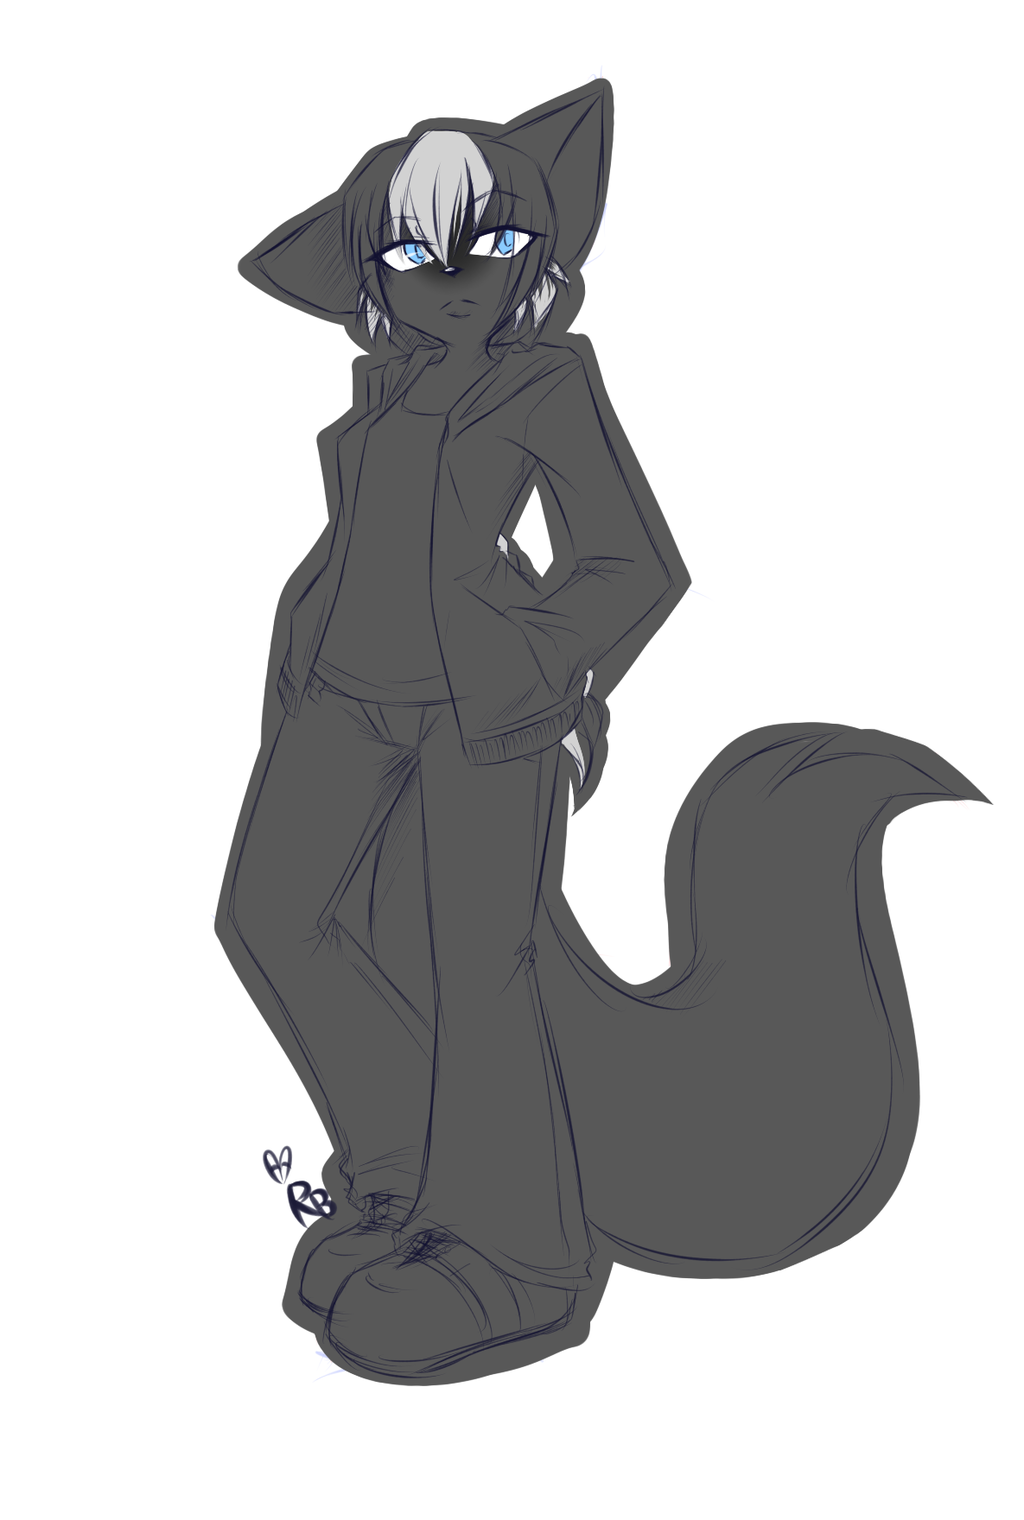 Anthro sketch commission